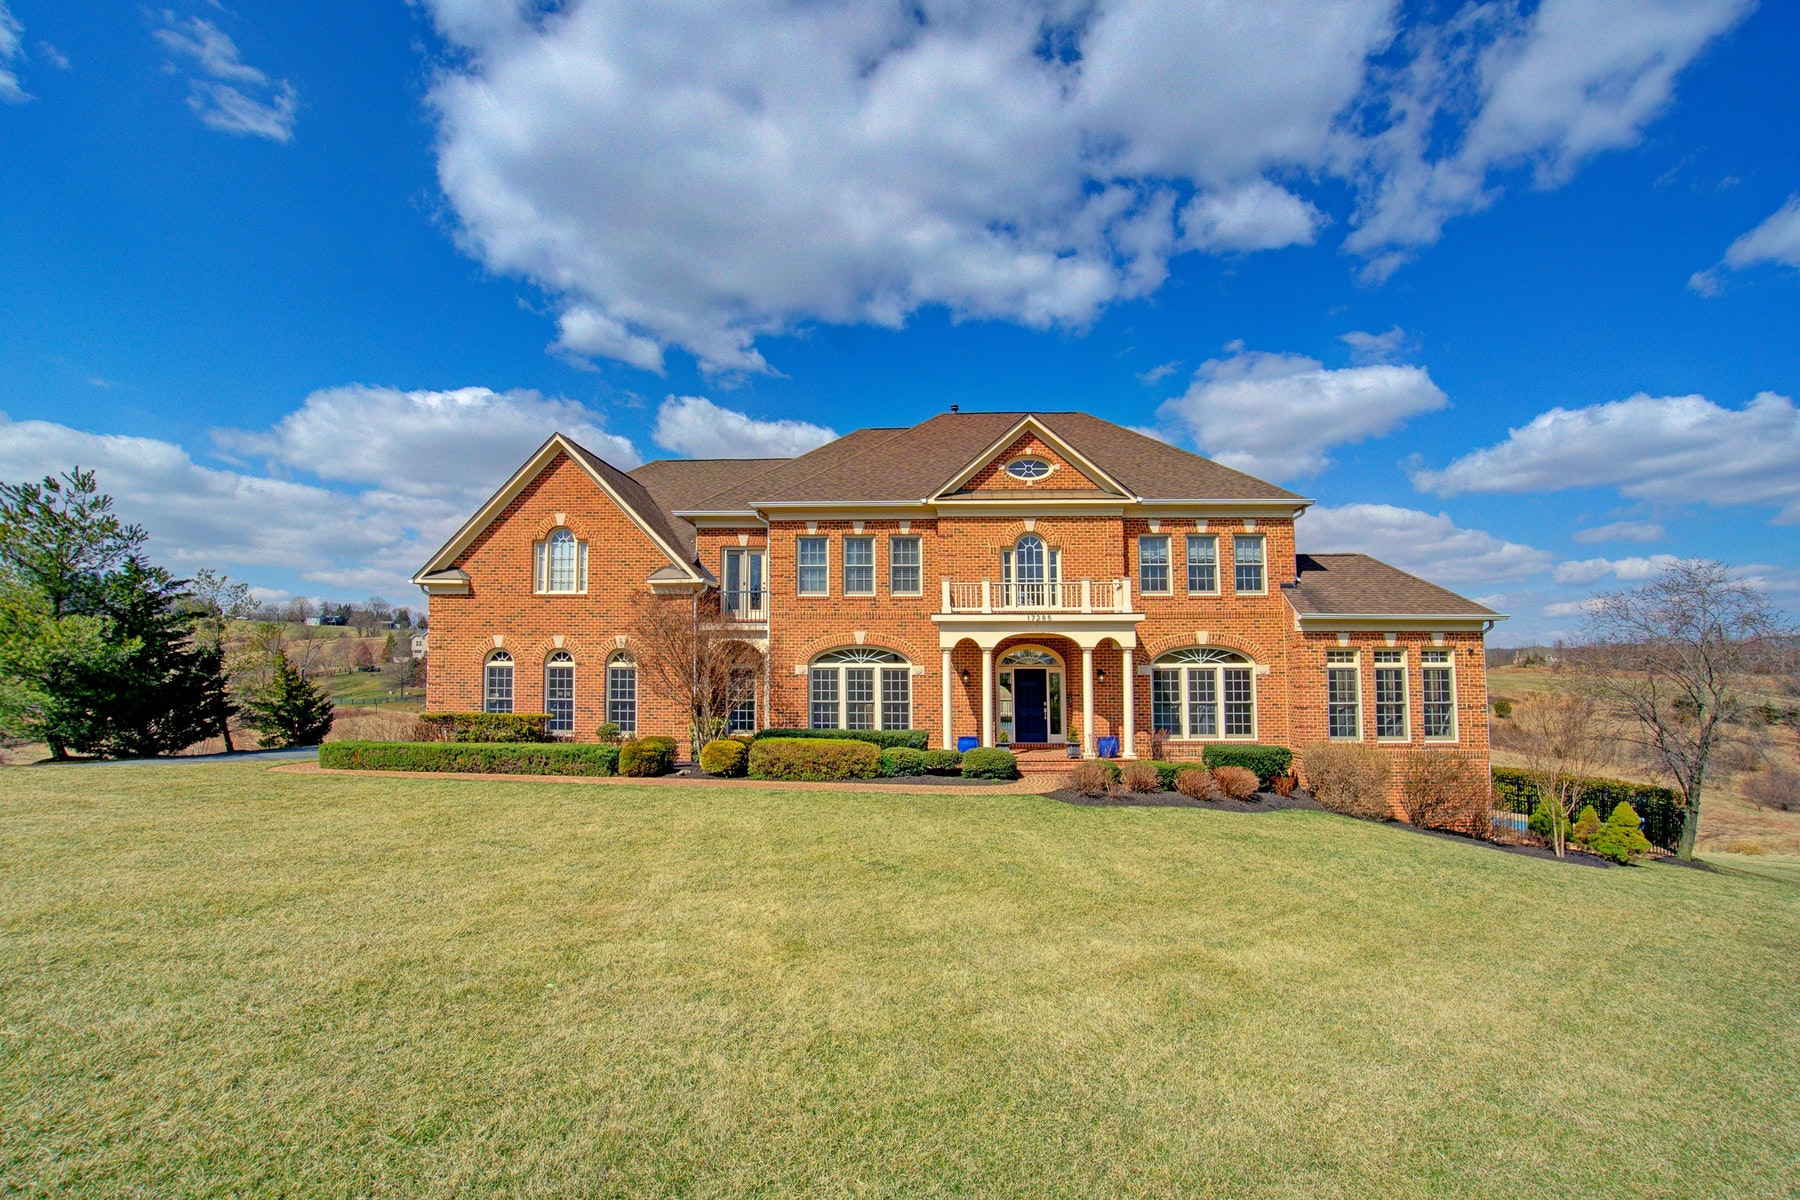 Single Family Home for Sale at Modern Colonial 17285 Count Turf Place Leesburg, Virginia 20176 United States